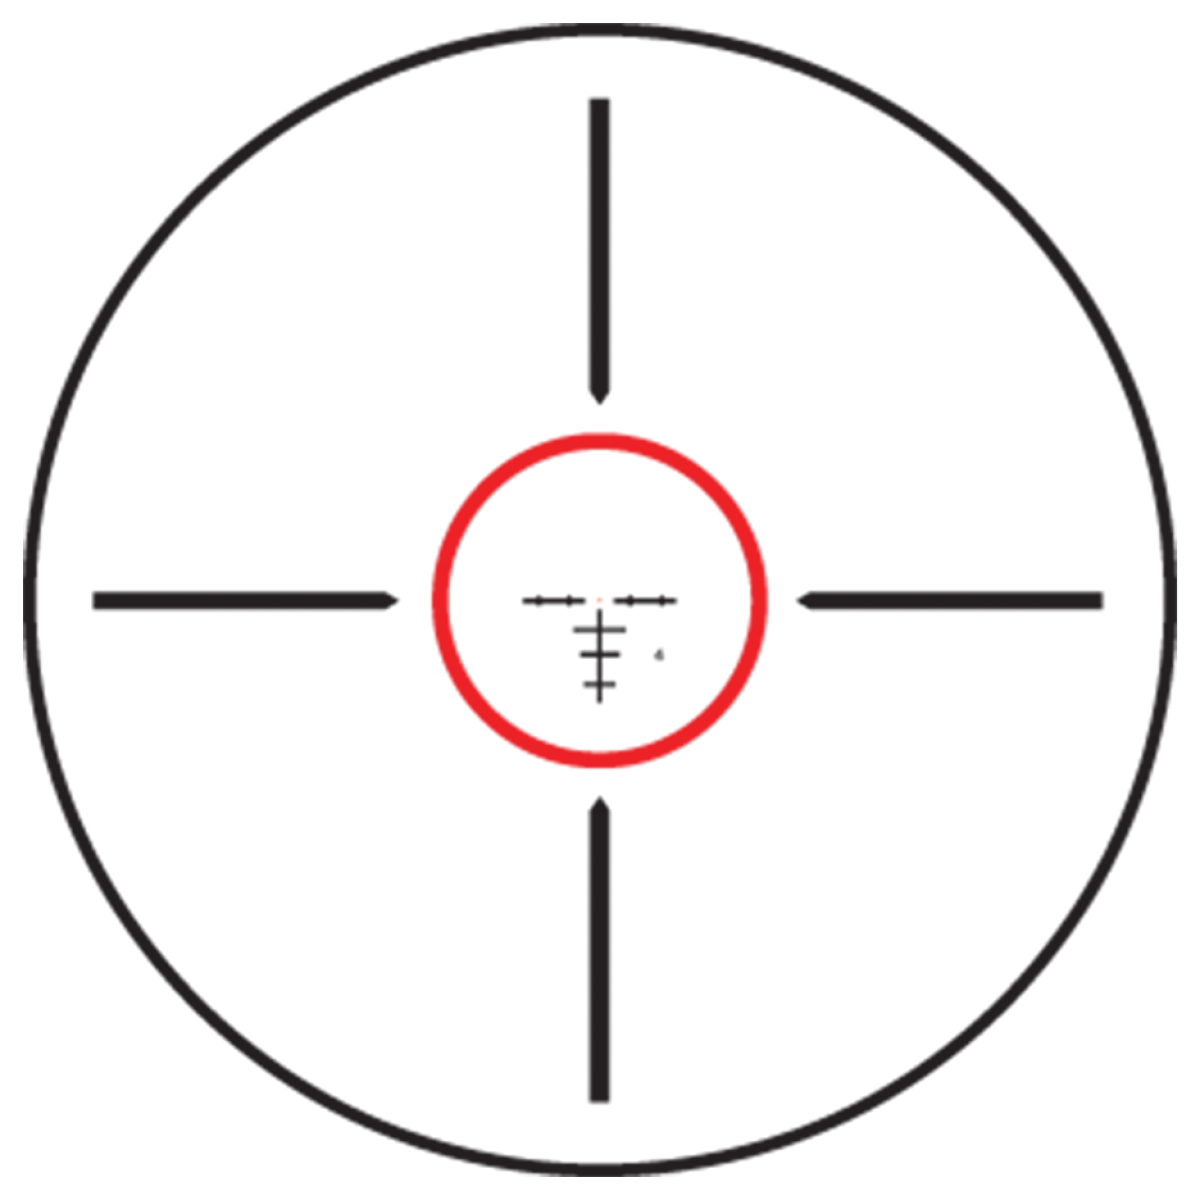 Rifle scope png. Burris xtr ii x